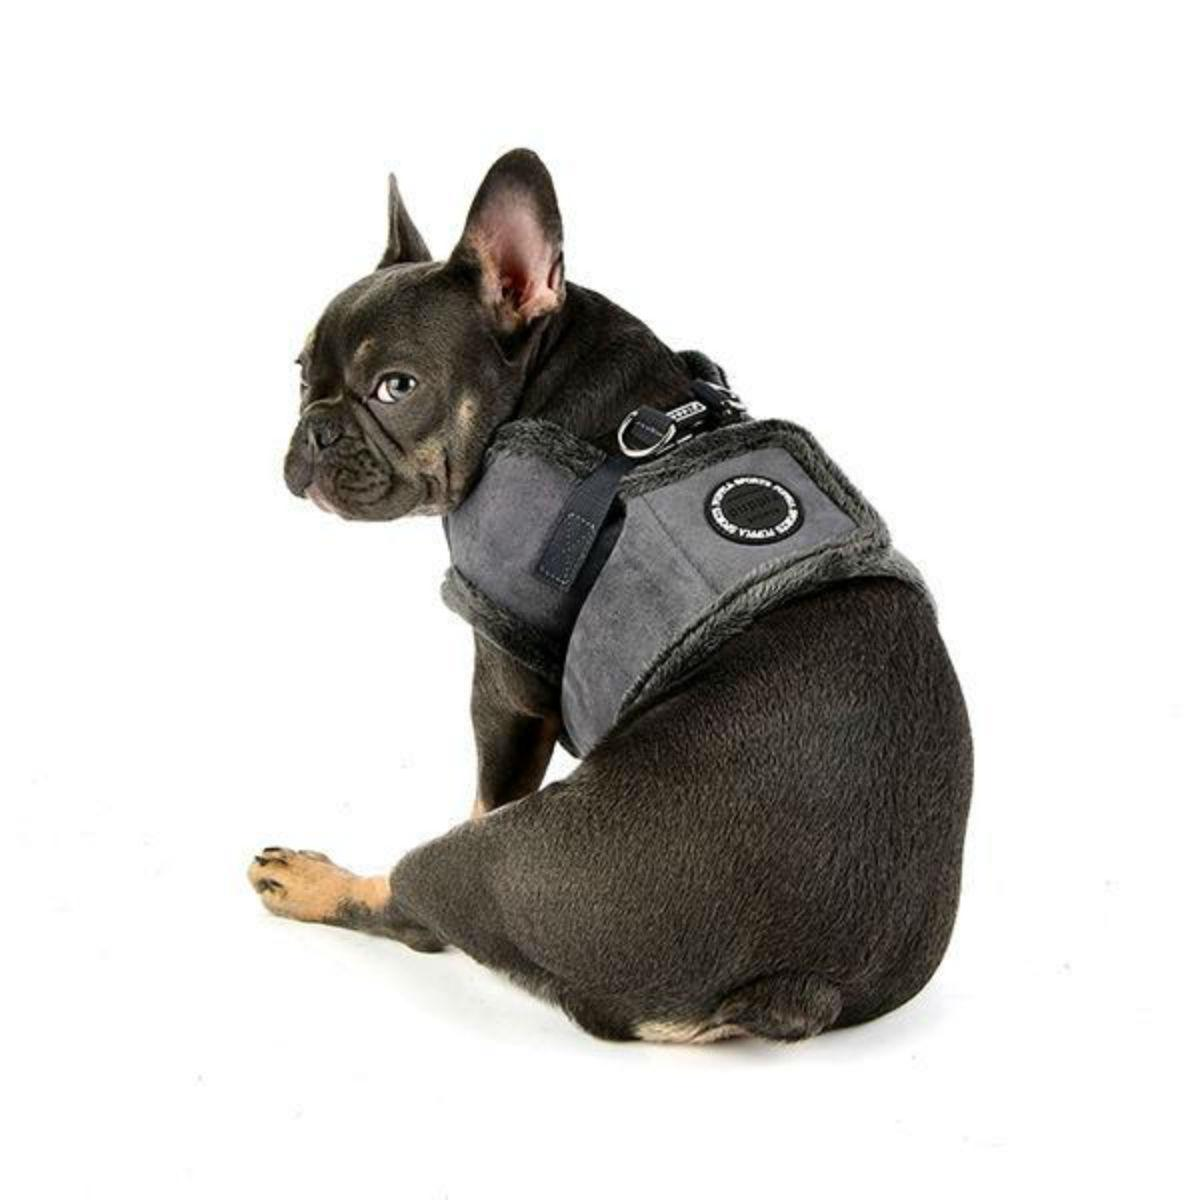 Terry Vest Dog Harness by Puppia - Gray